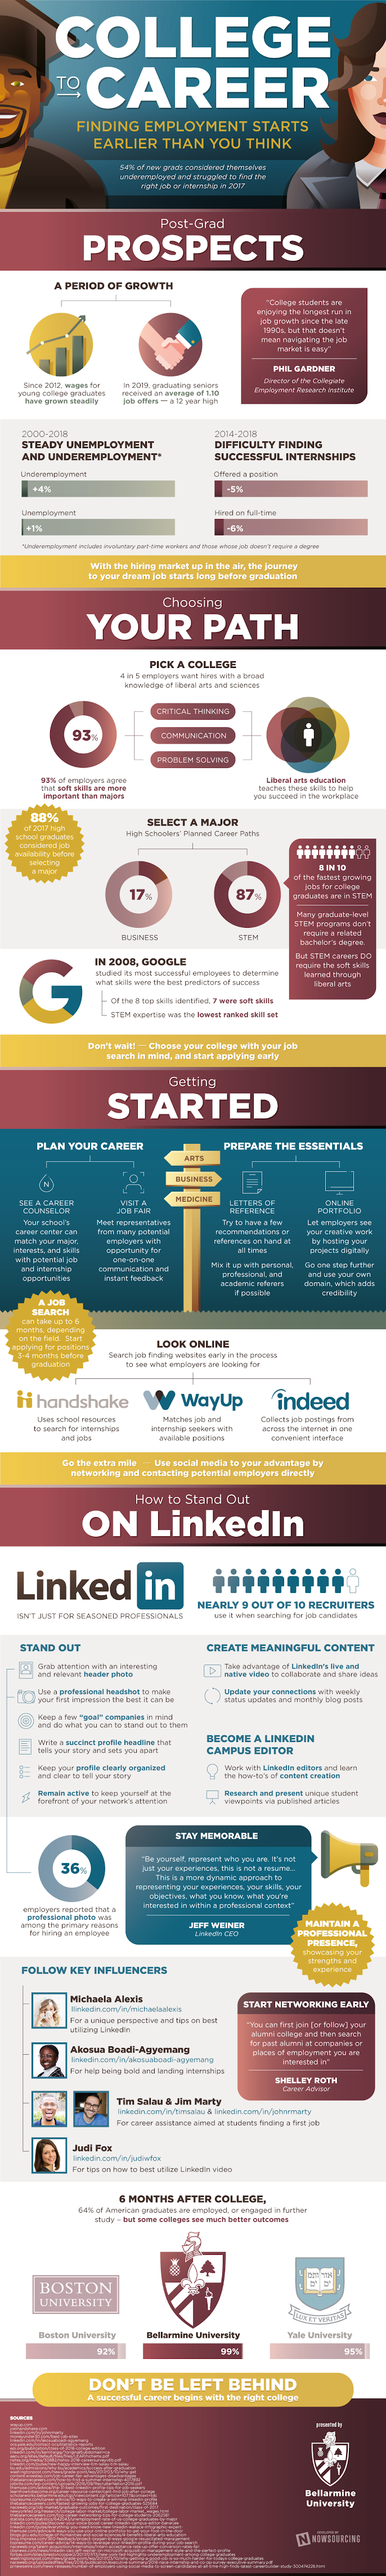 College To Career #infographic